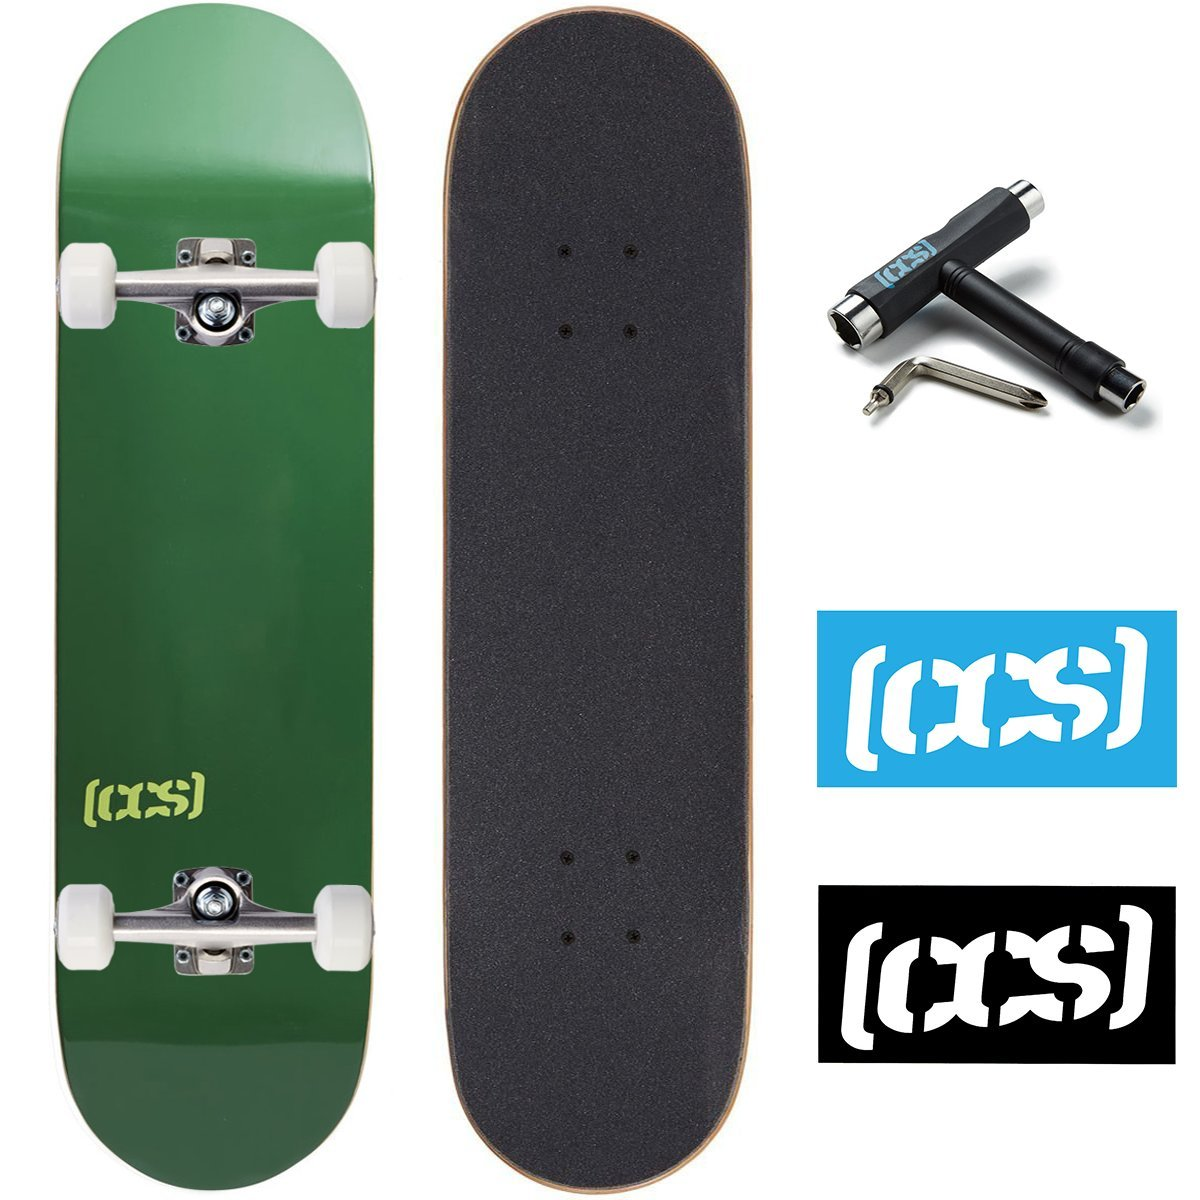 CCS Skateboard Complete - Color Logo and Natural Wood - Fully Assembled - Includes Skateboard Tool and Stickers (Evergreen, 7.0'' (Mini/Kid's Size))